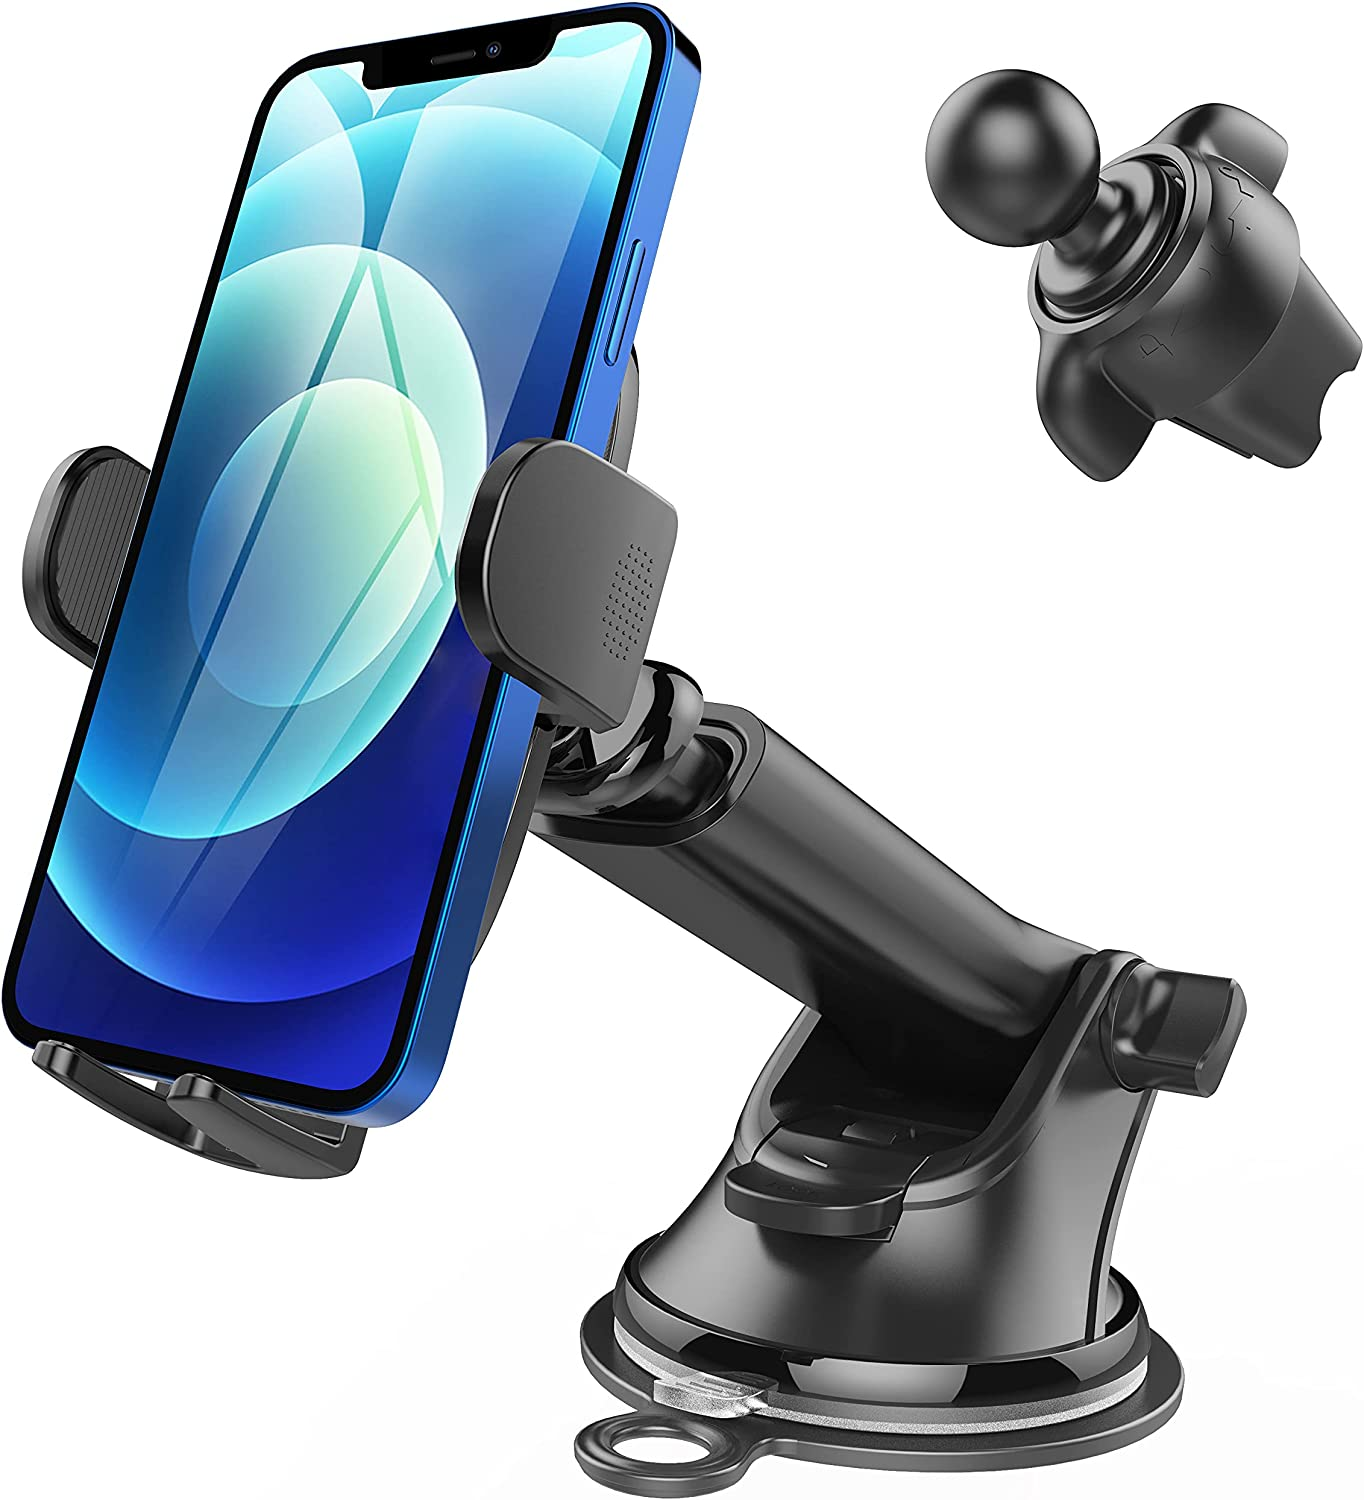 Ultra Sticky Car Phone Holder Mount, Long Arm Suction Cup Cell Phone Holder for Car Dashboard Windshield Air Vent Handsfree Phone Car Mount Fit 4-6.8 Inch Cell Phones, Thick Case & Big Phones Friendly